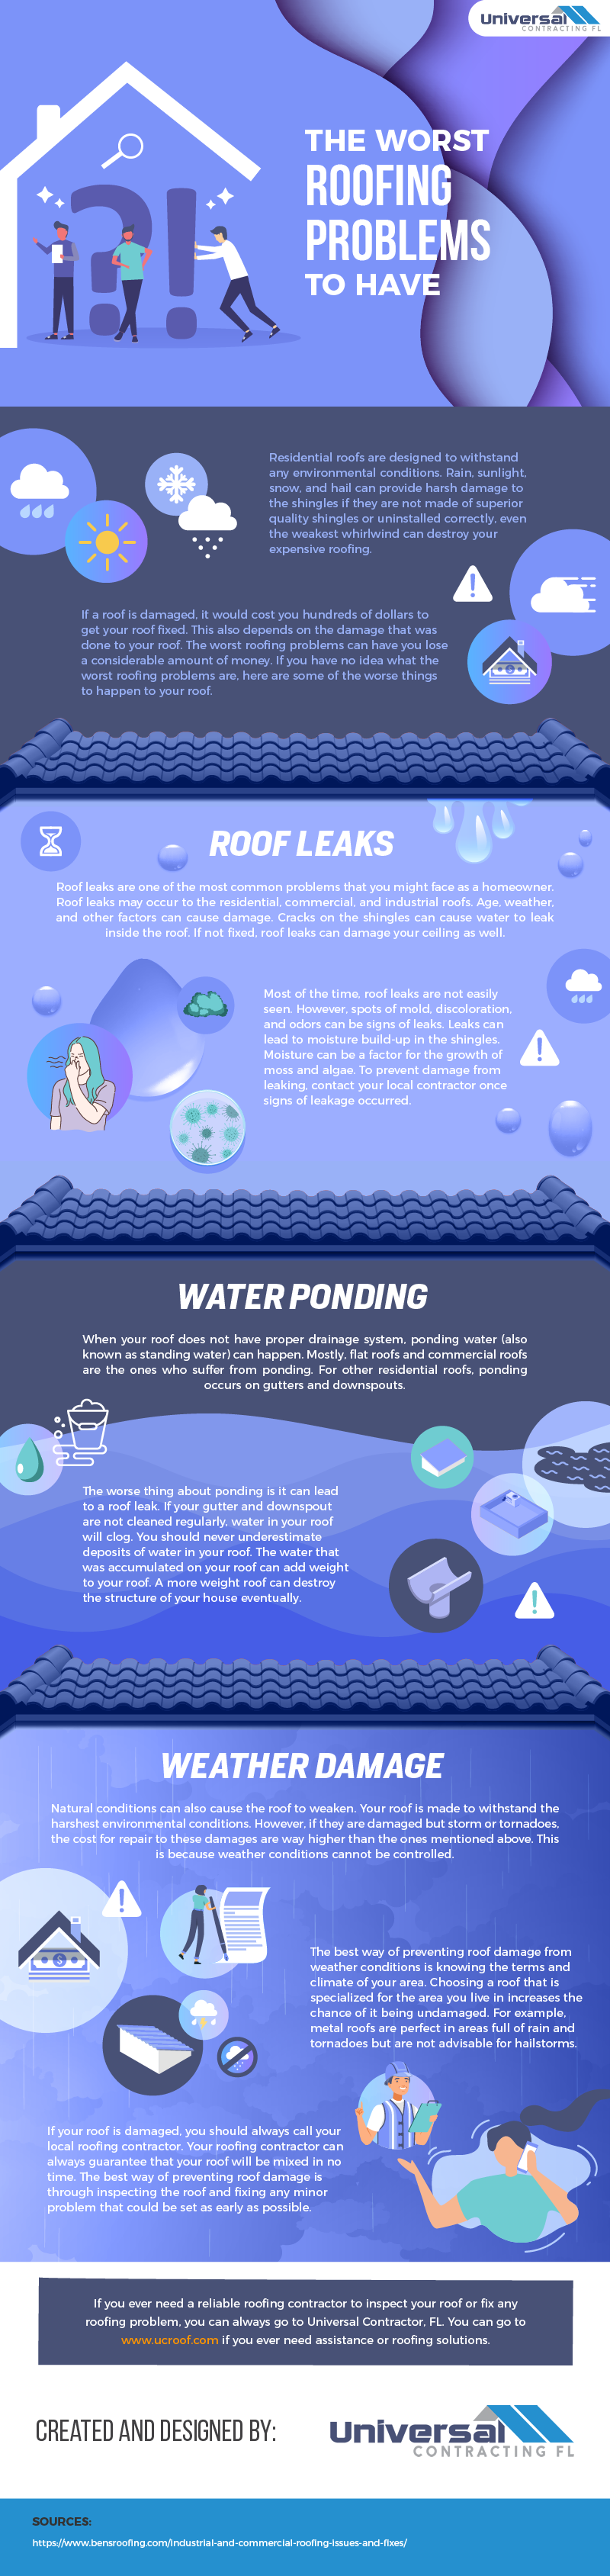 The worst roofing problems to have - Infographic